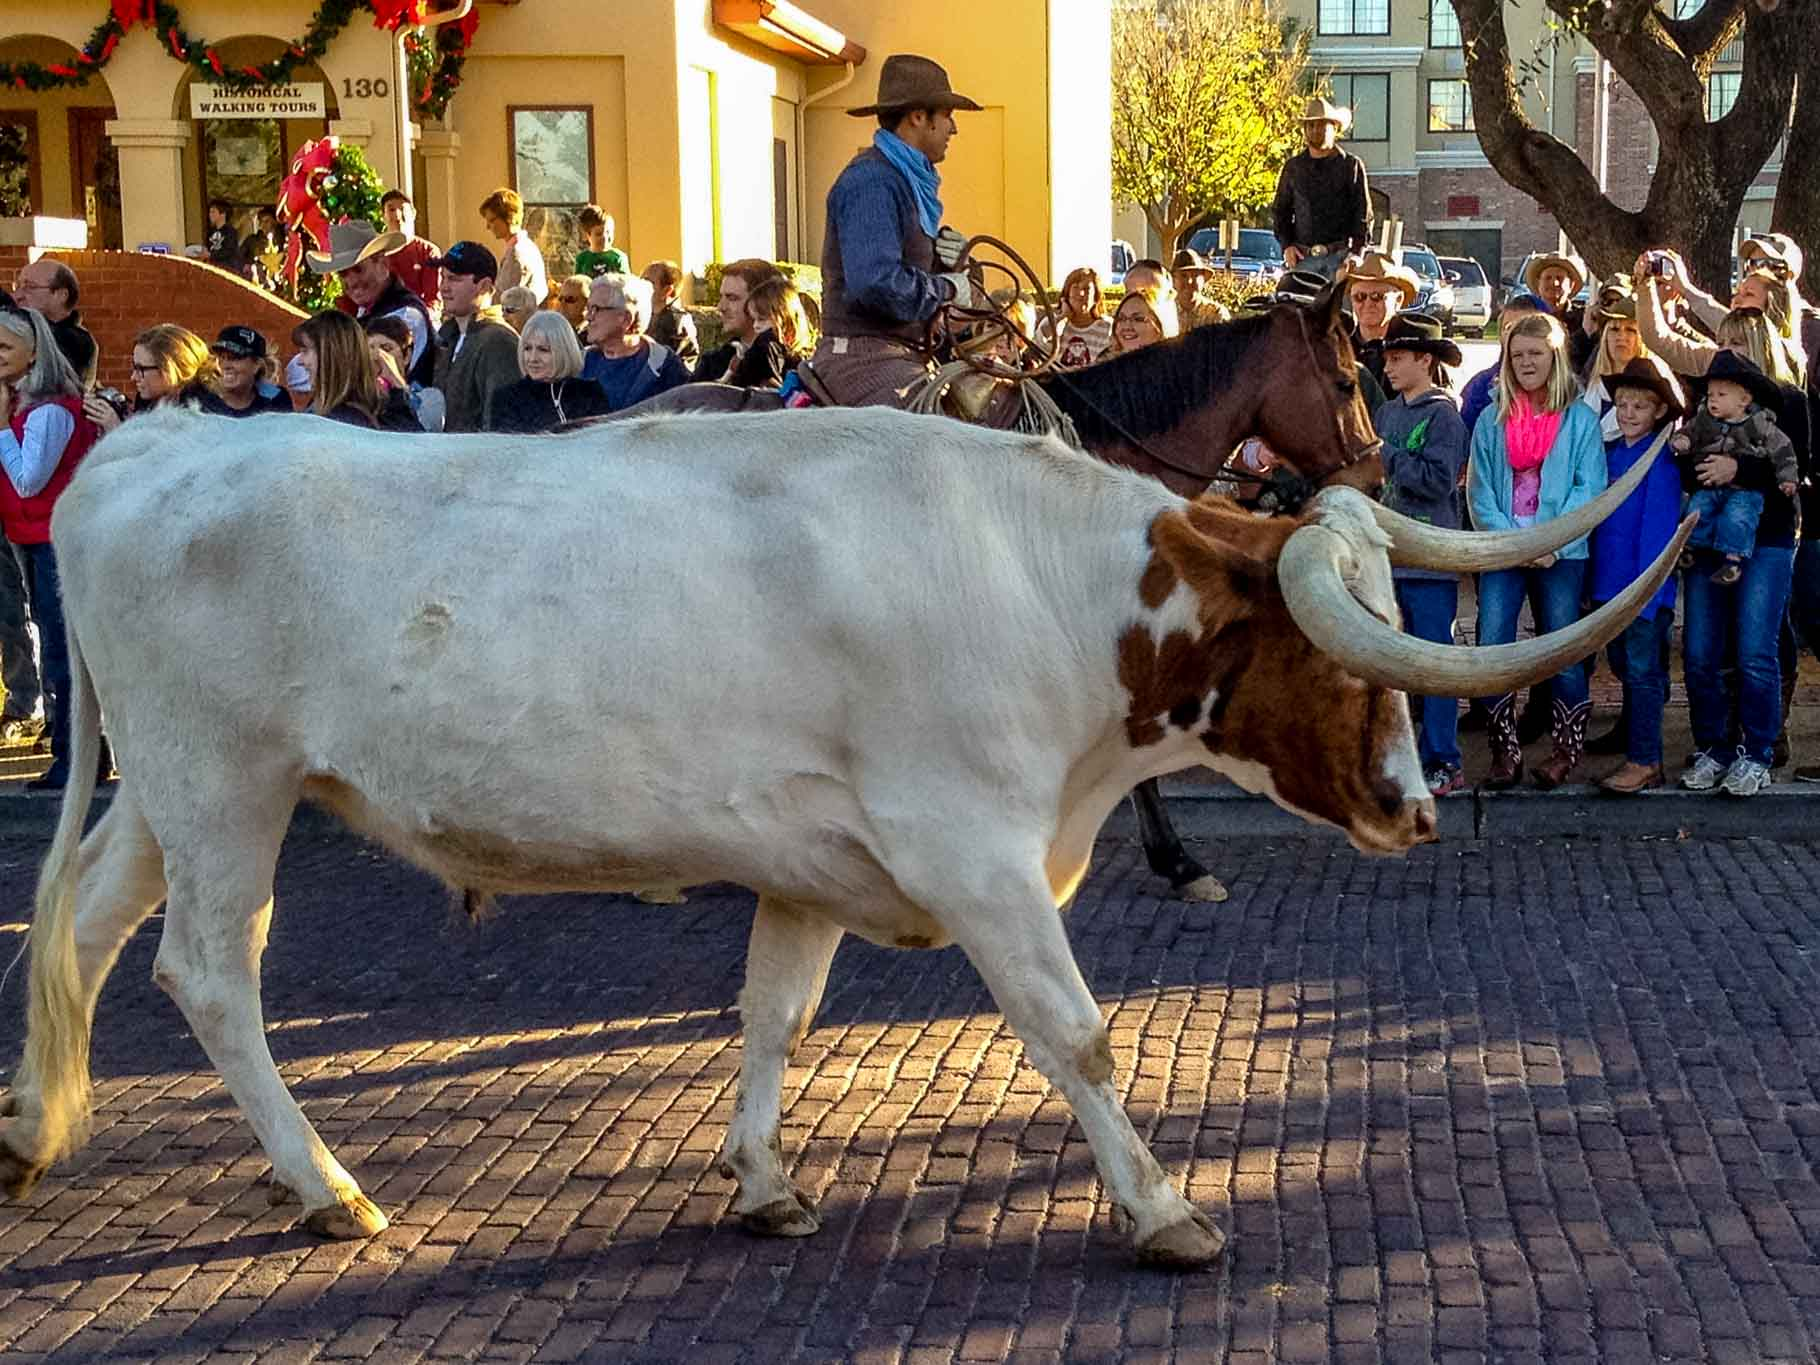 Longhorn cattle walking in the street with crowd looking on